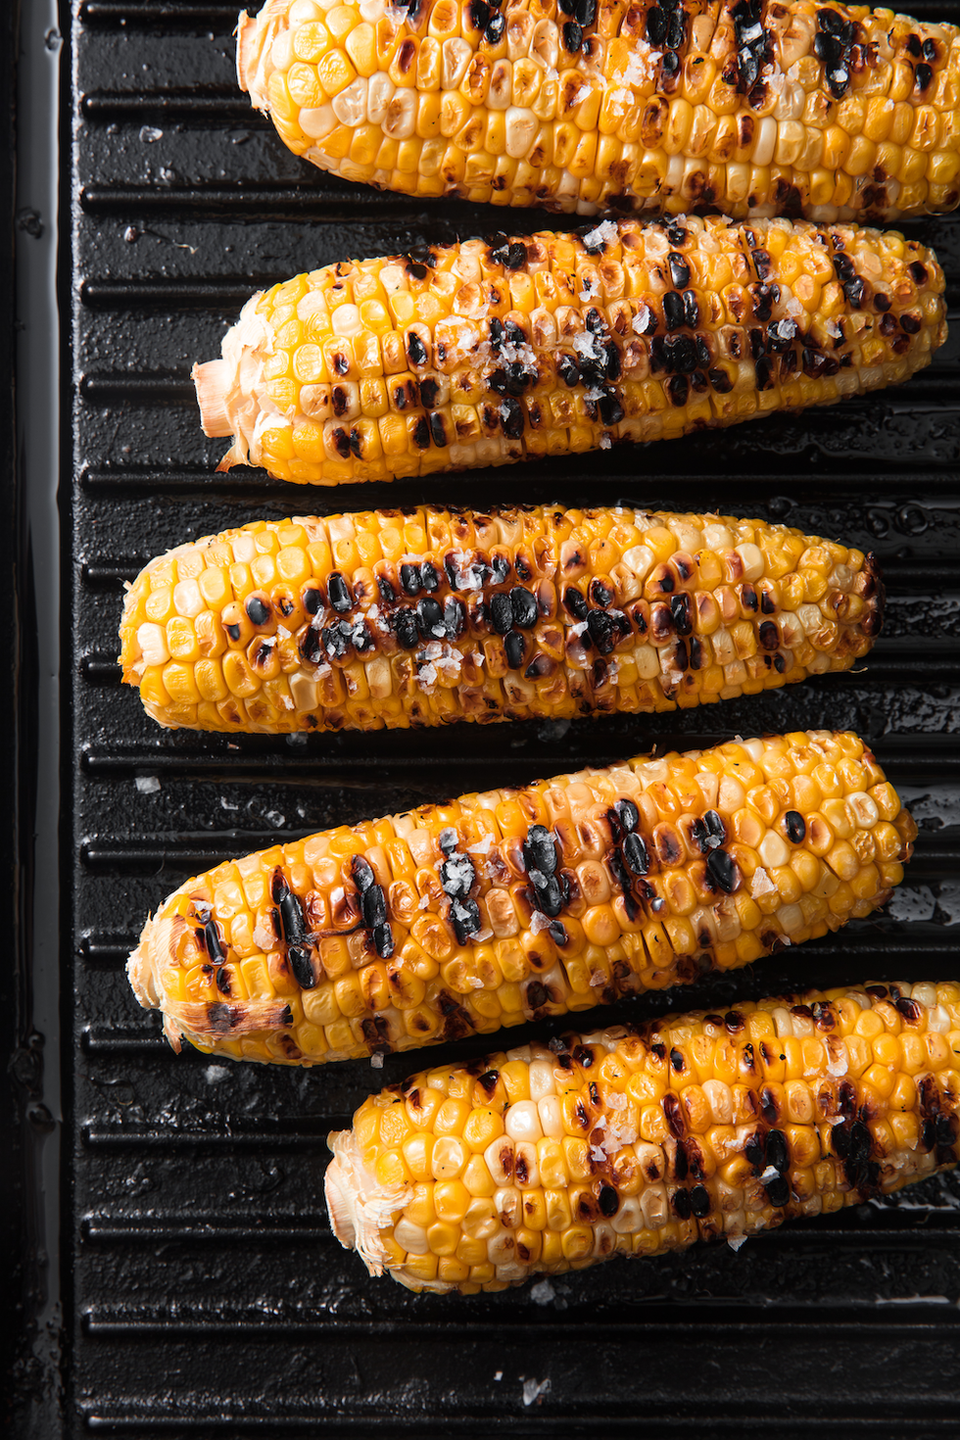 """<p>Breaking out the grill? Don't skip out on the corn!<br></p><p>Get the recipe from <a href=""""https://www.delish.com/cooking/recipe-ideas/a19637515/best-grilled-corn-on-the-cob-recipe/"""" rel=""""nofollow noopener"""" target=""""_blank"""" data-ylk=""""slk:Delish"""" class=""""link rapid-noclick-resp"""">Delish</a>.</p>"""